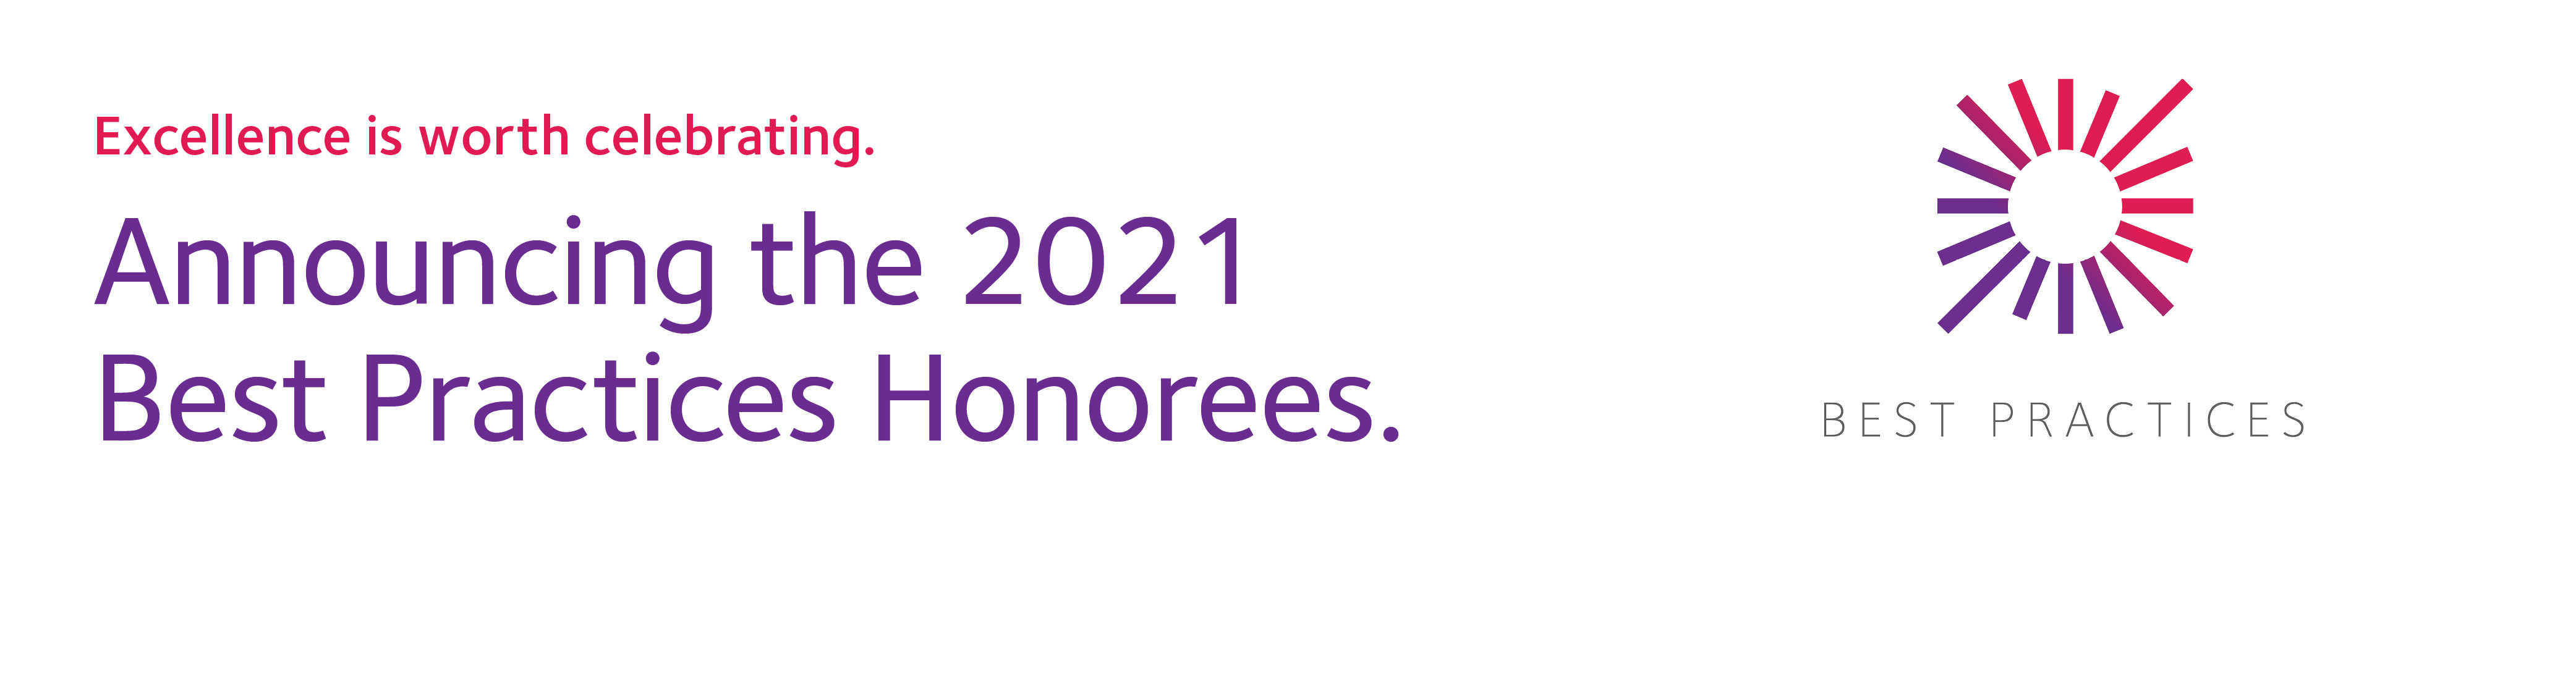 Best Practices 2021 Honorees